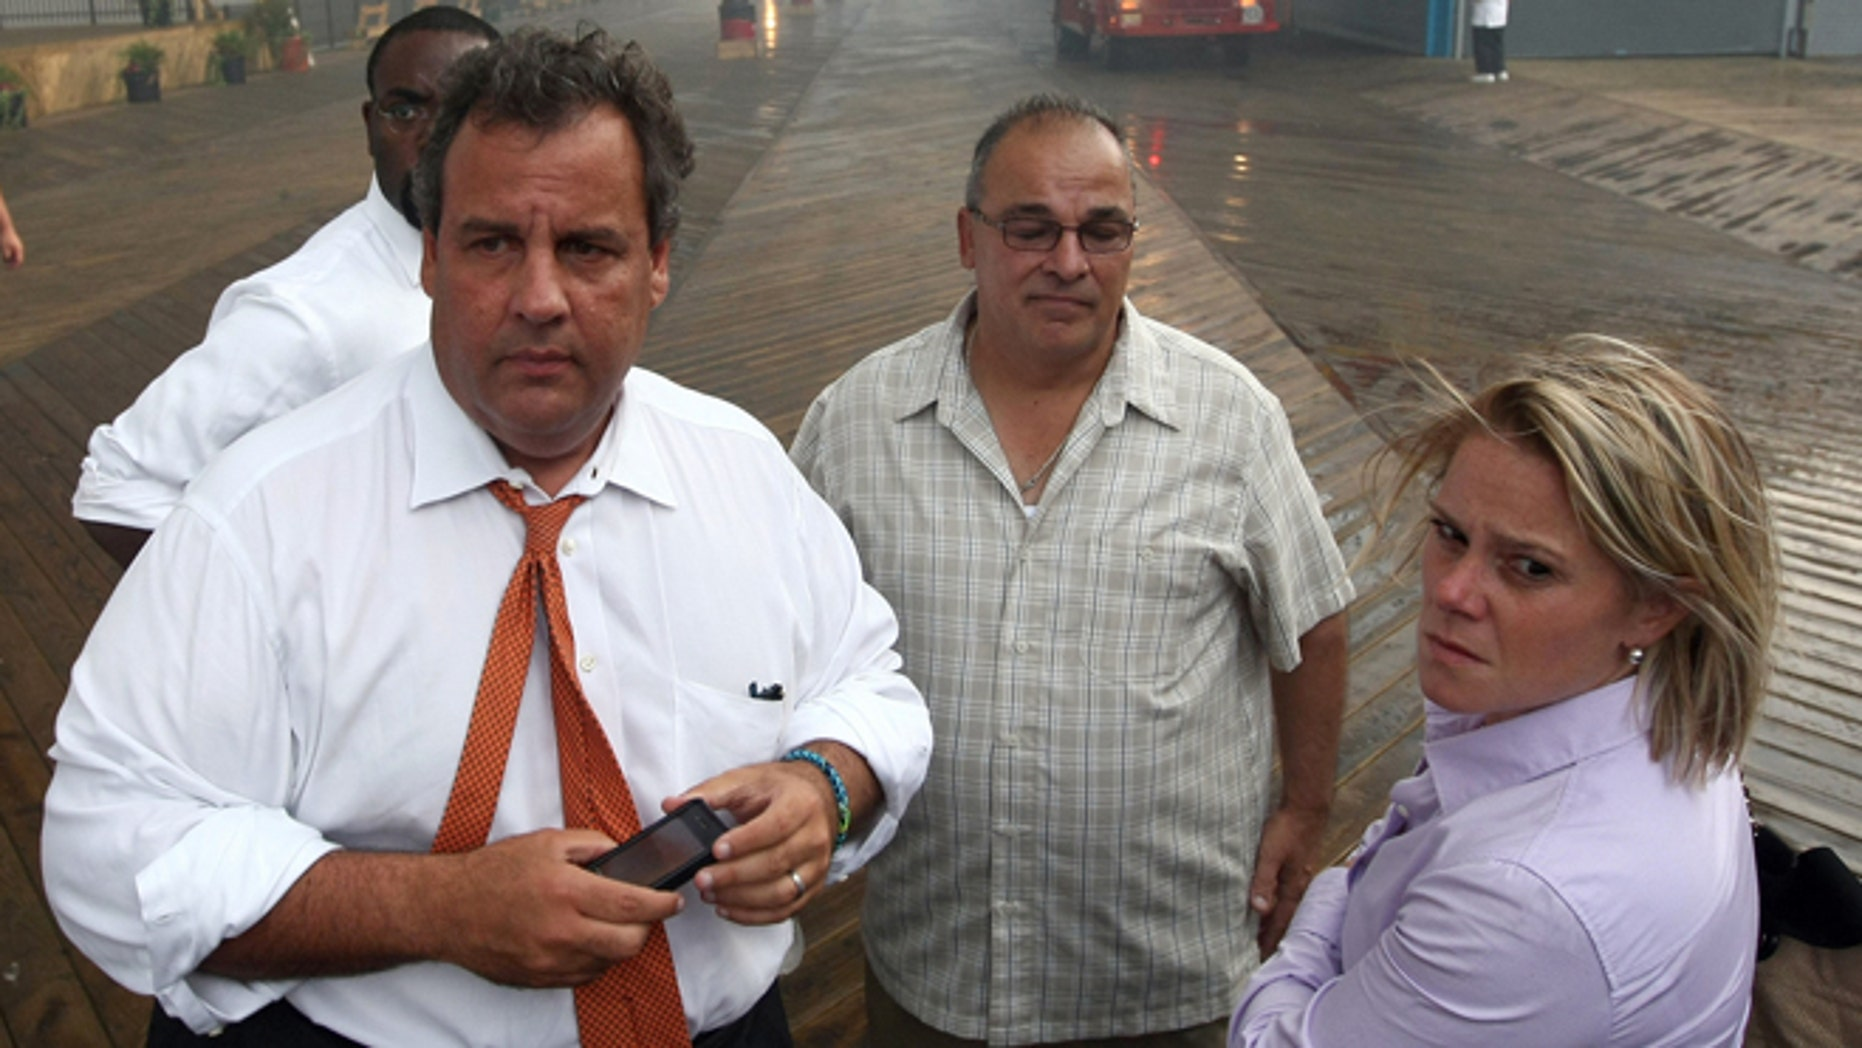 "In this Sept. 12, 2013 photo provided by the Office of the Governor of New Jersey, Deputy Chief of Staff Bridget Anne Kelly, right, stands with Gov. Chris Christie, left, during a tour of the Seaside Heights, N.J. boardwalk after it was hit by a massive fire. Christie fired Kelly Thursday, Jan. 9, 2014, and apologized over and over for his staff's ""stupid"" behavior, insisting during a nearly two-hour news conference that he had no idea anyone around him had engineered traffic jams as part of a political vendetta against a Democratic mayor. (AP Photo/Office of Gov. Chris Christie, Tim Larsen)"